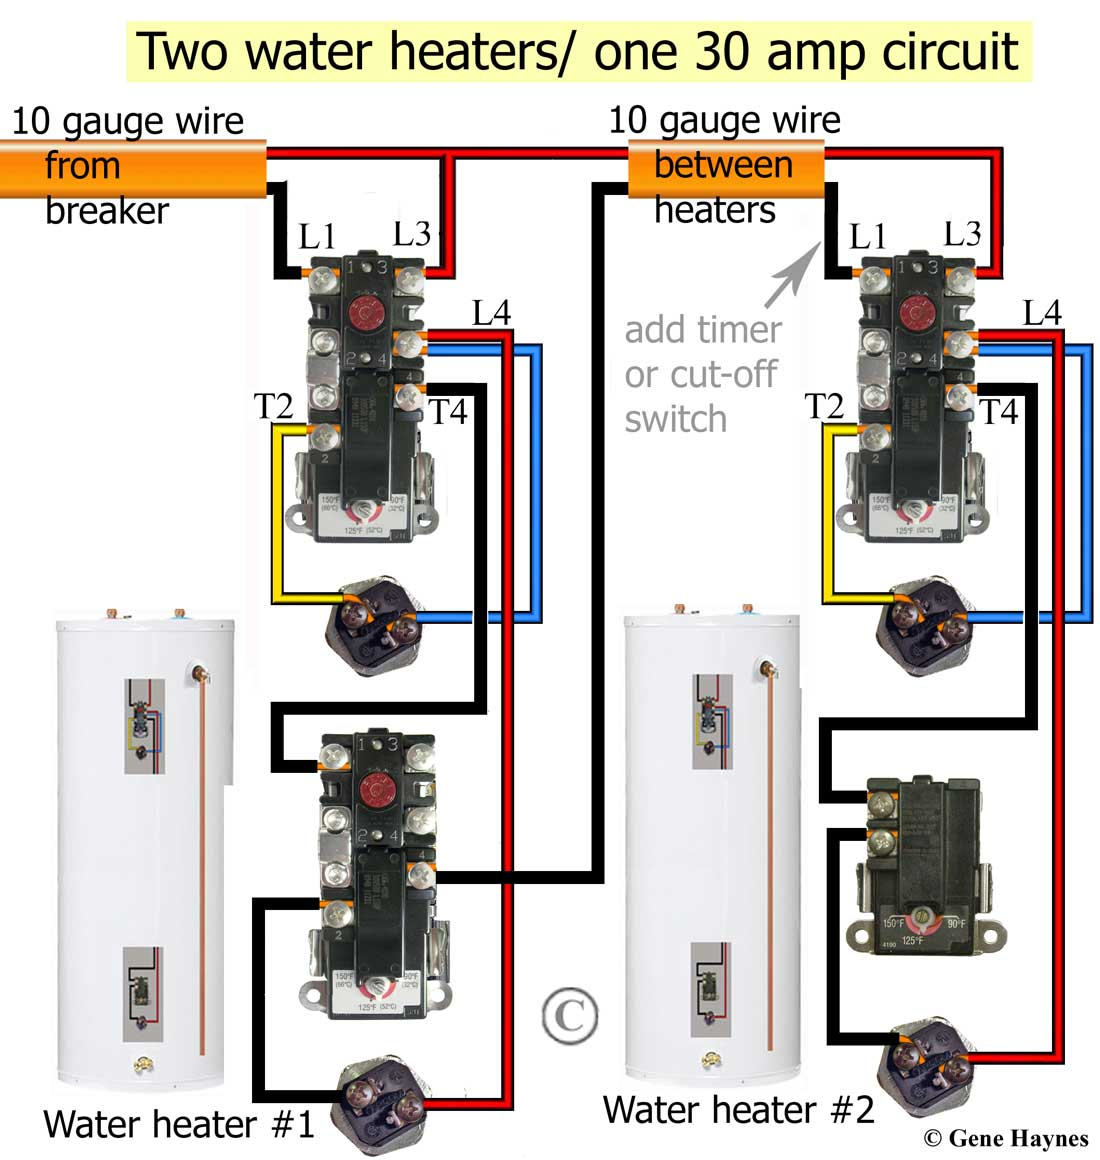 Electric Hot Water Heater Circuit Wiring Diagram Data Wiring Diagram  Tankless Water Heater Schematic Water Heater Wiring Schematic